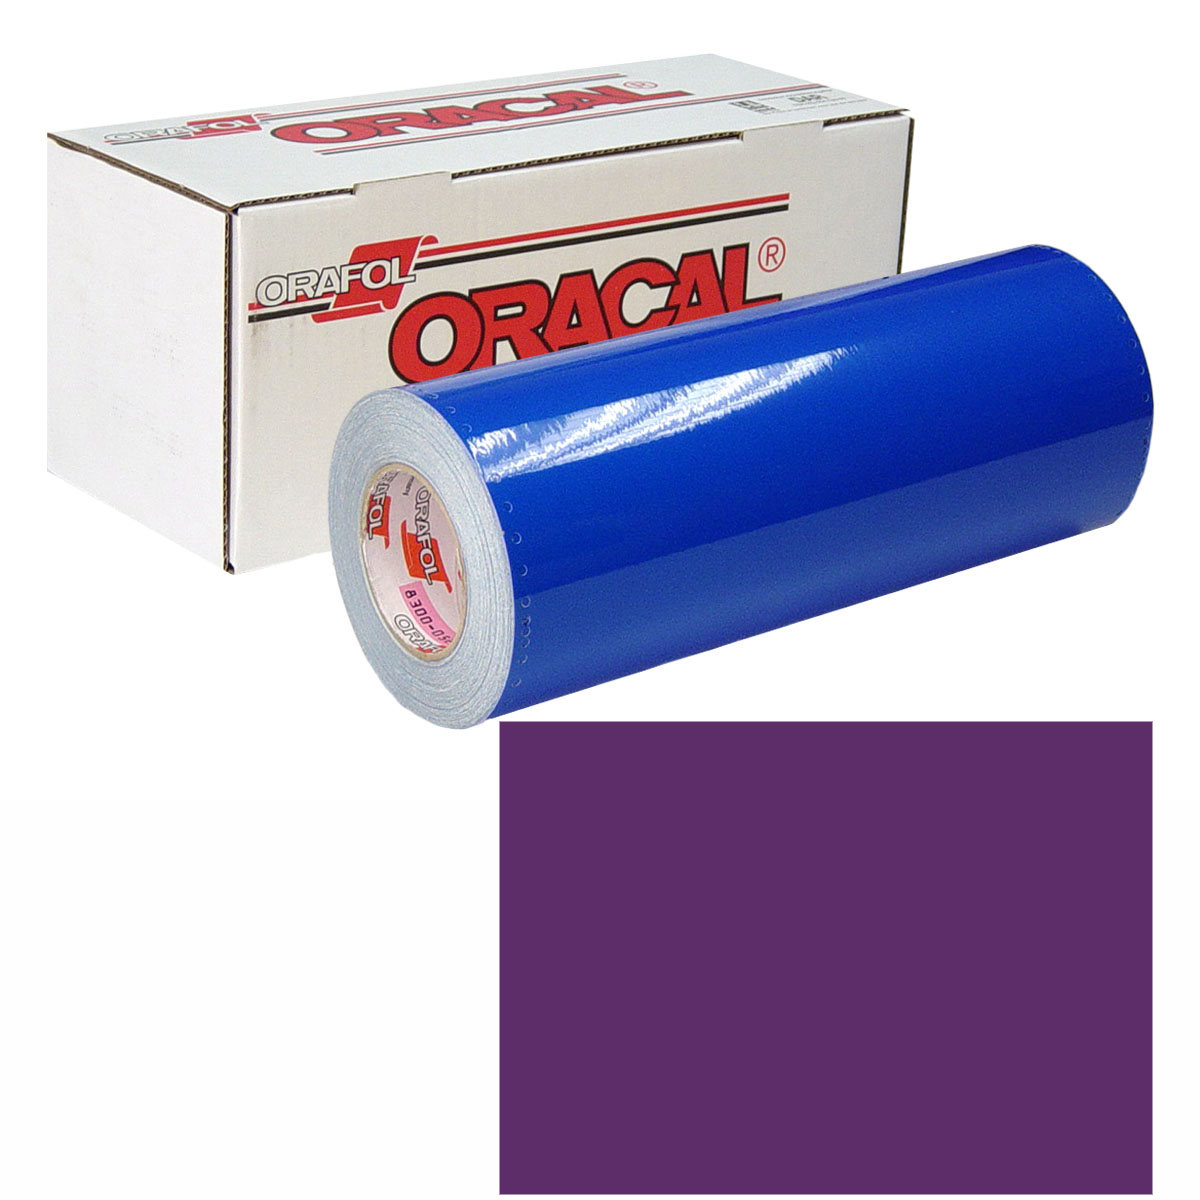 ORACAL 631 Unp 30In X 10Yd 040 Violet